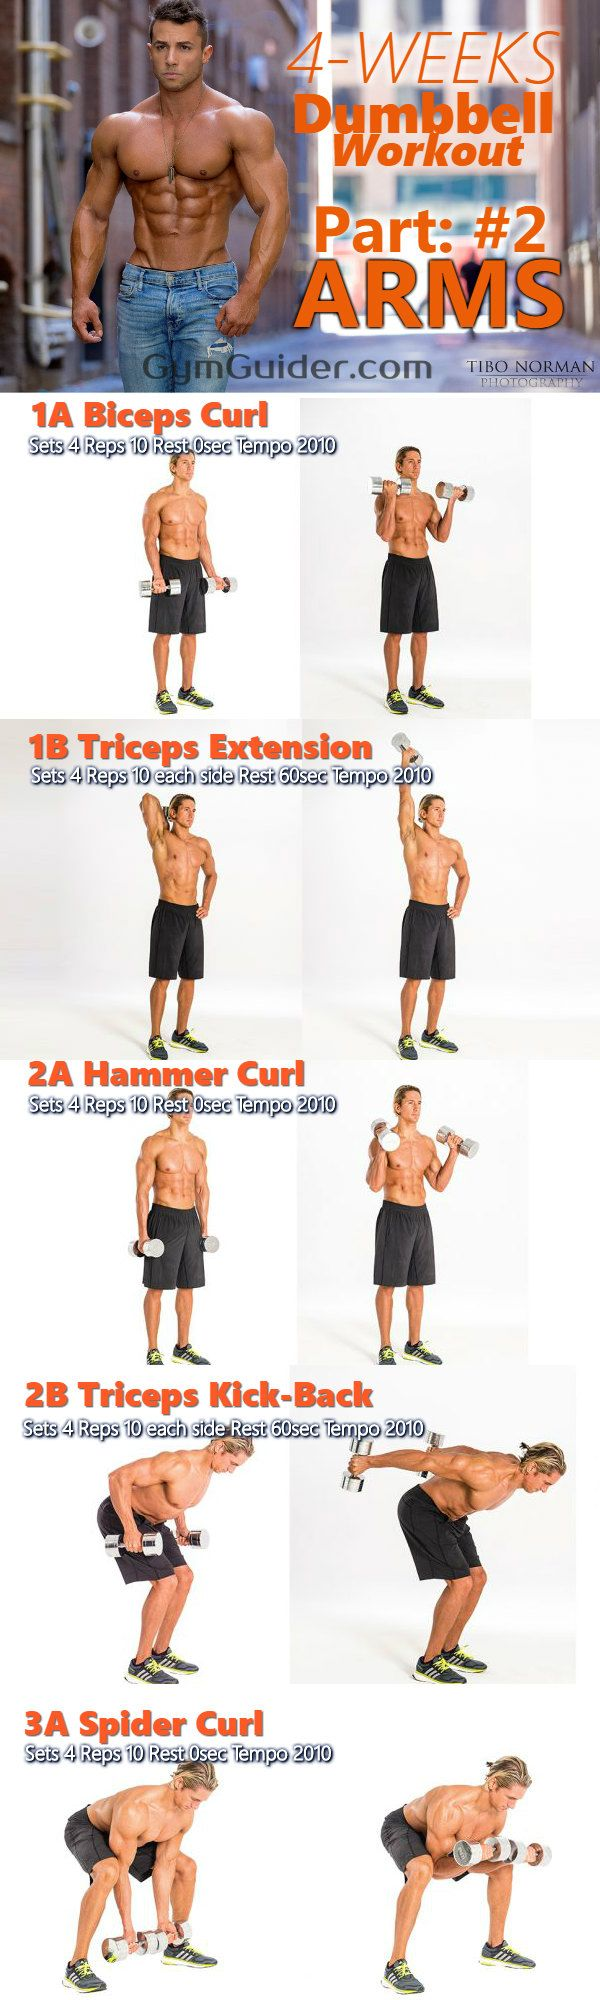 The 4-Week Dumbbell Workout Plan Part 2: Arms | Health and